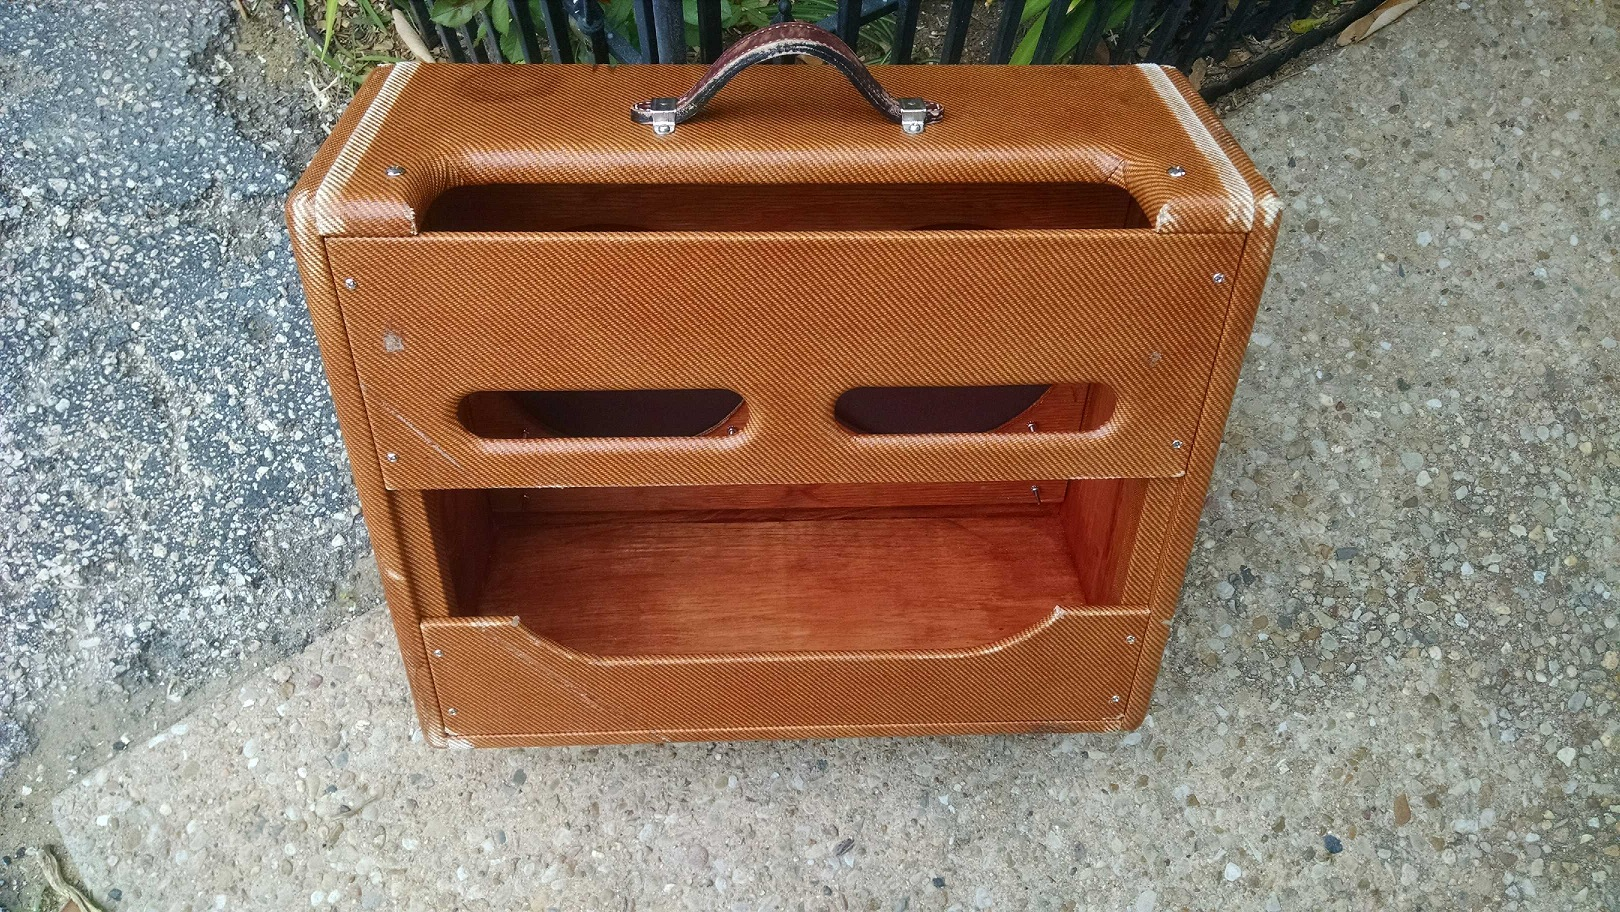 Get a custom Fender relic cabinet for your tweed amplifier